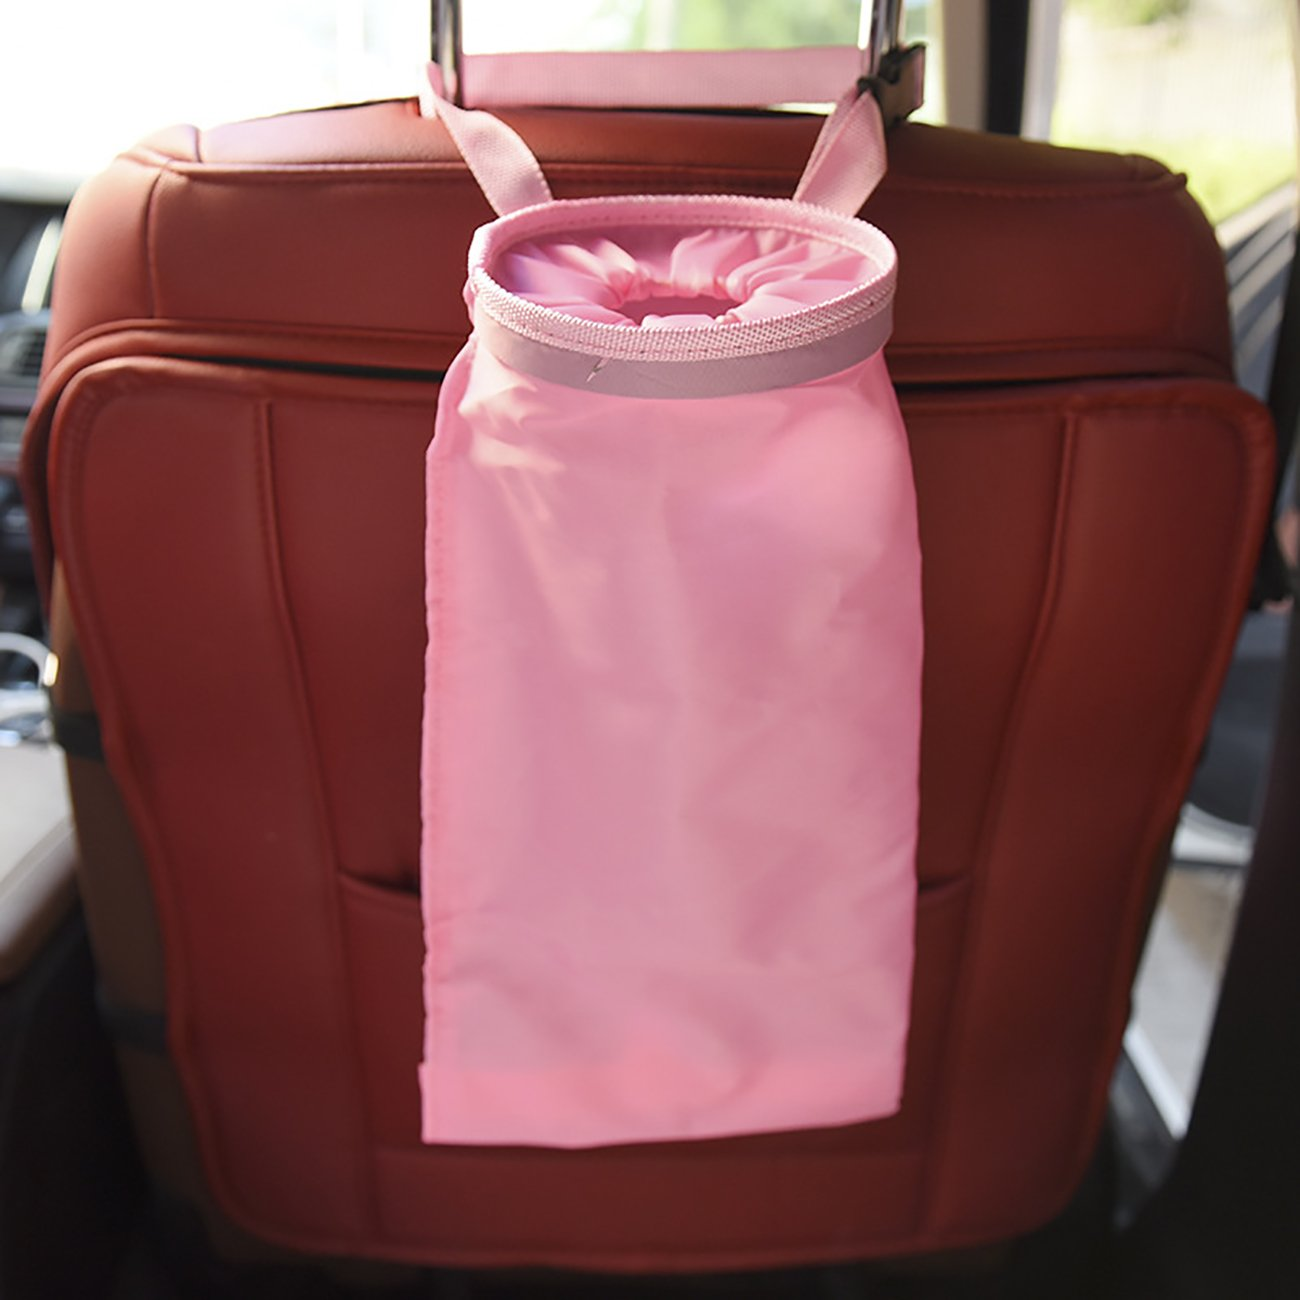 Thee車ゴミ袋Leakproof Washableホームオフィス車のBack Hanging Trash ピンク WAPJSN964pk B07FFTDHPF ピンク